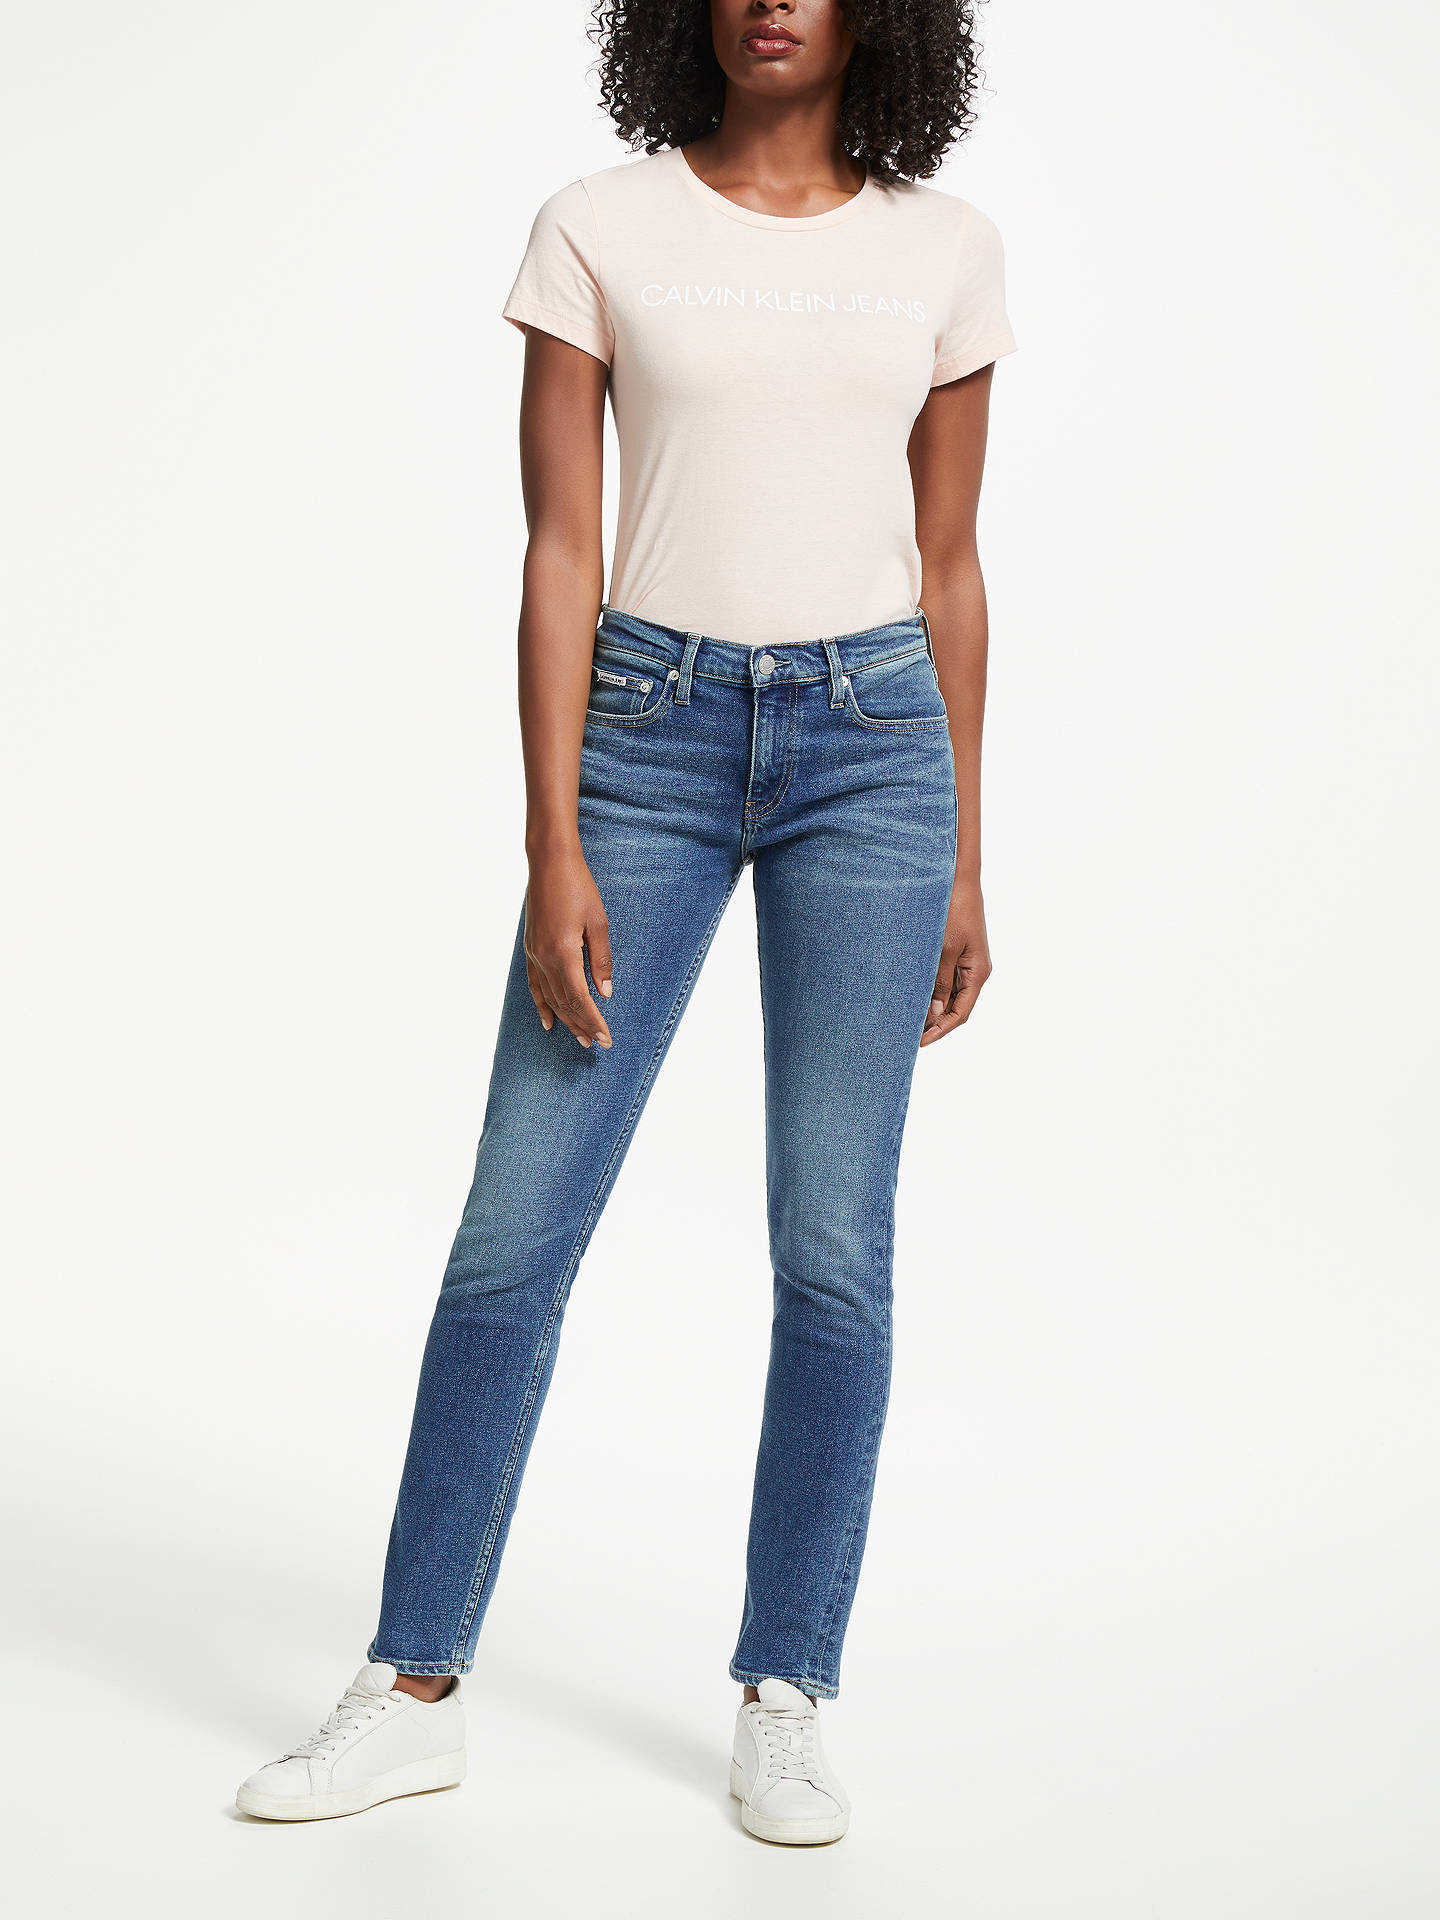 BuyCalvin Klein Mid Rise Slim Jeans, Chico Blue, W27/L30 Online at johnlewis.com